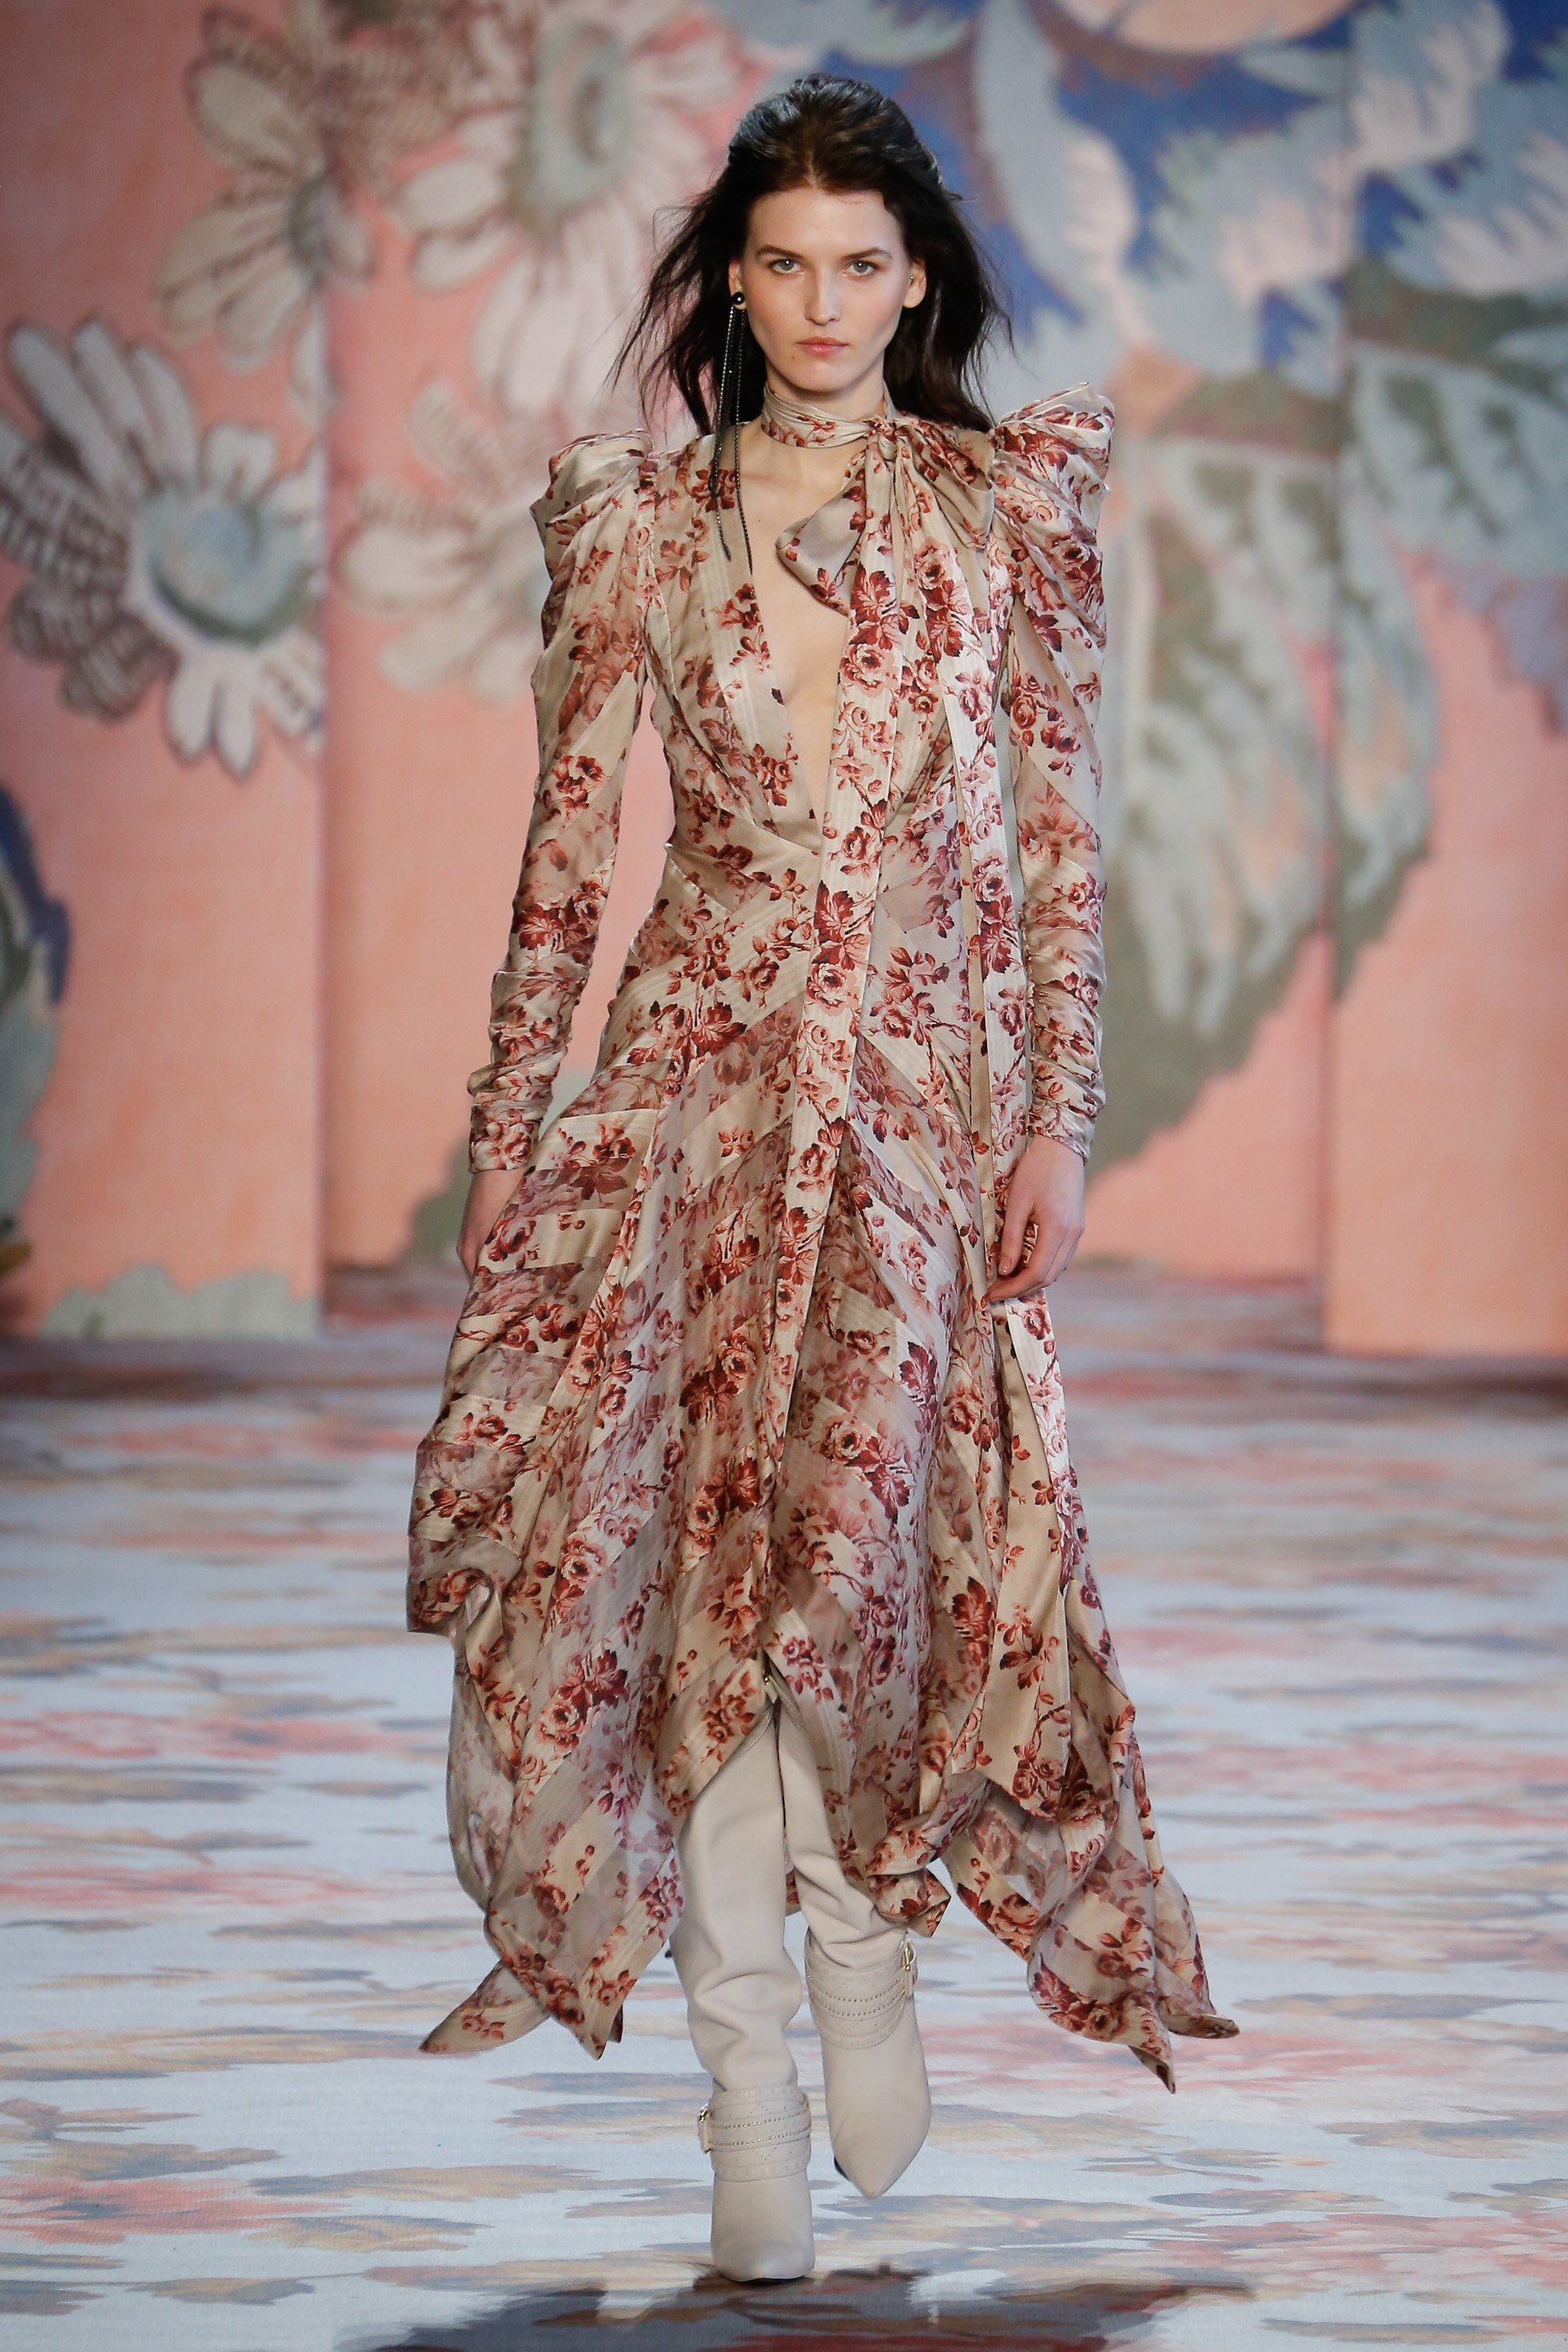 Comprehensive Bohemian Style Interiors Guide To Use In: Zimmermann Fall 2018 Ready-to-Wear Fashion Show